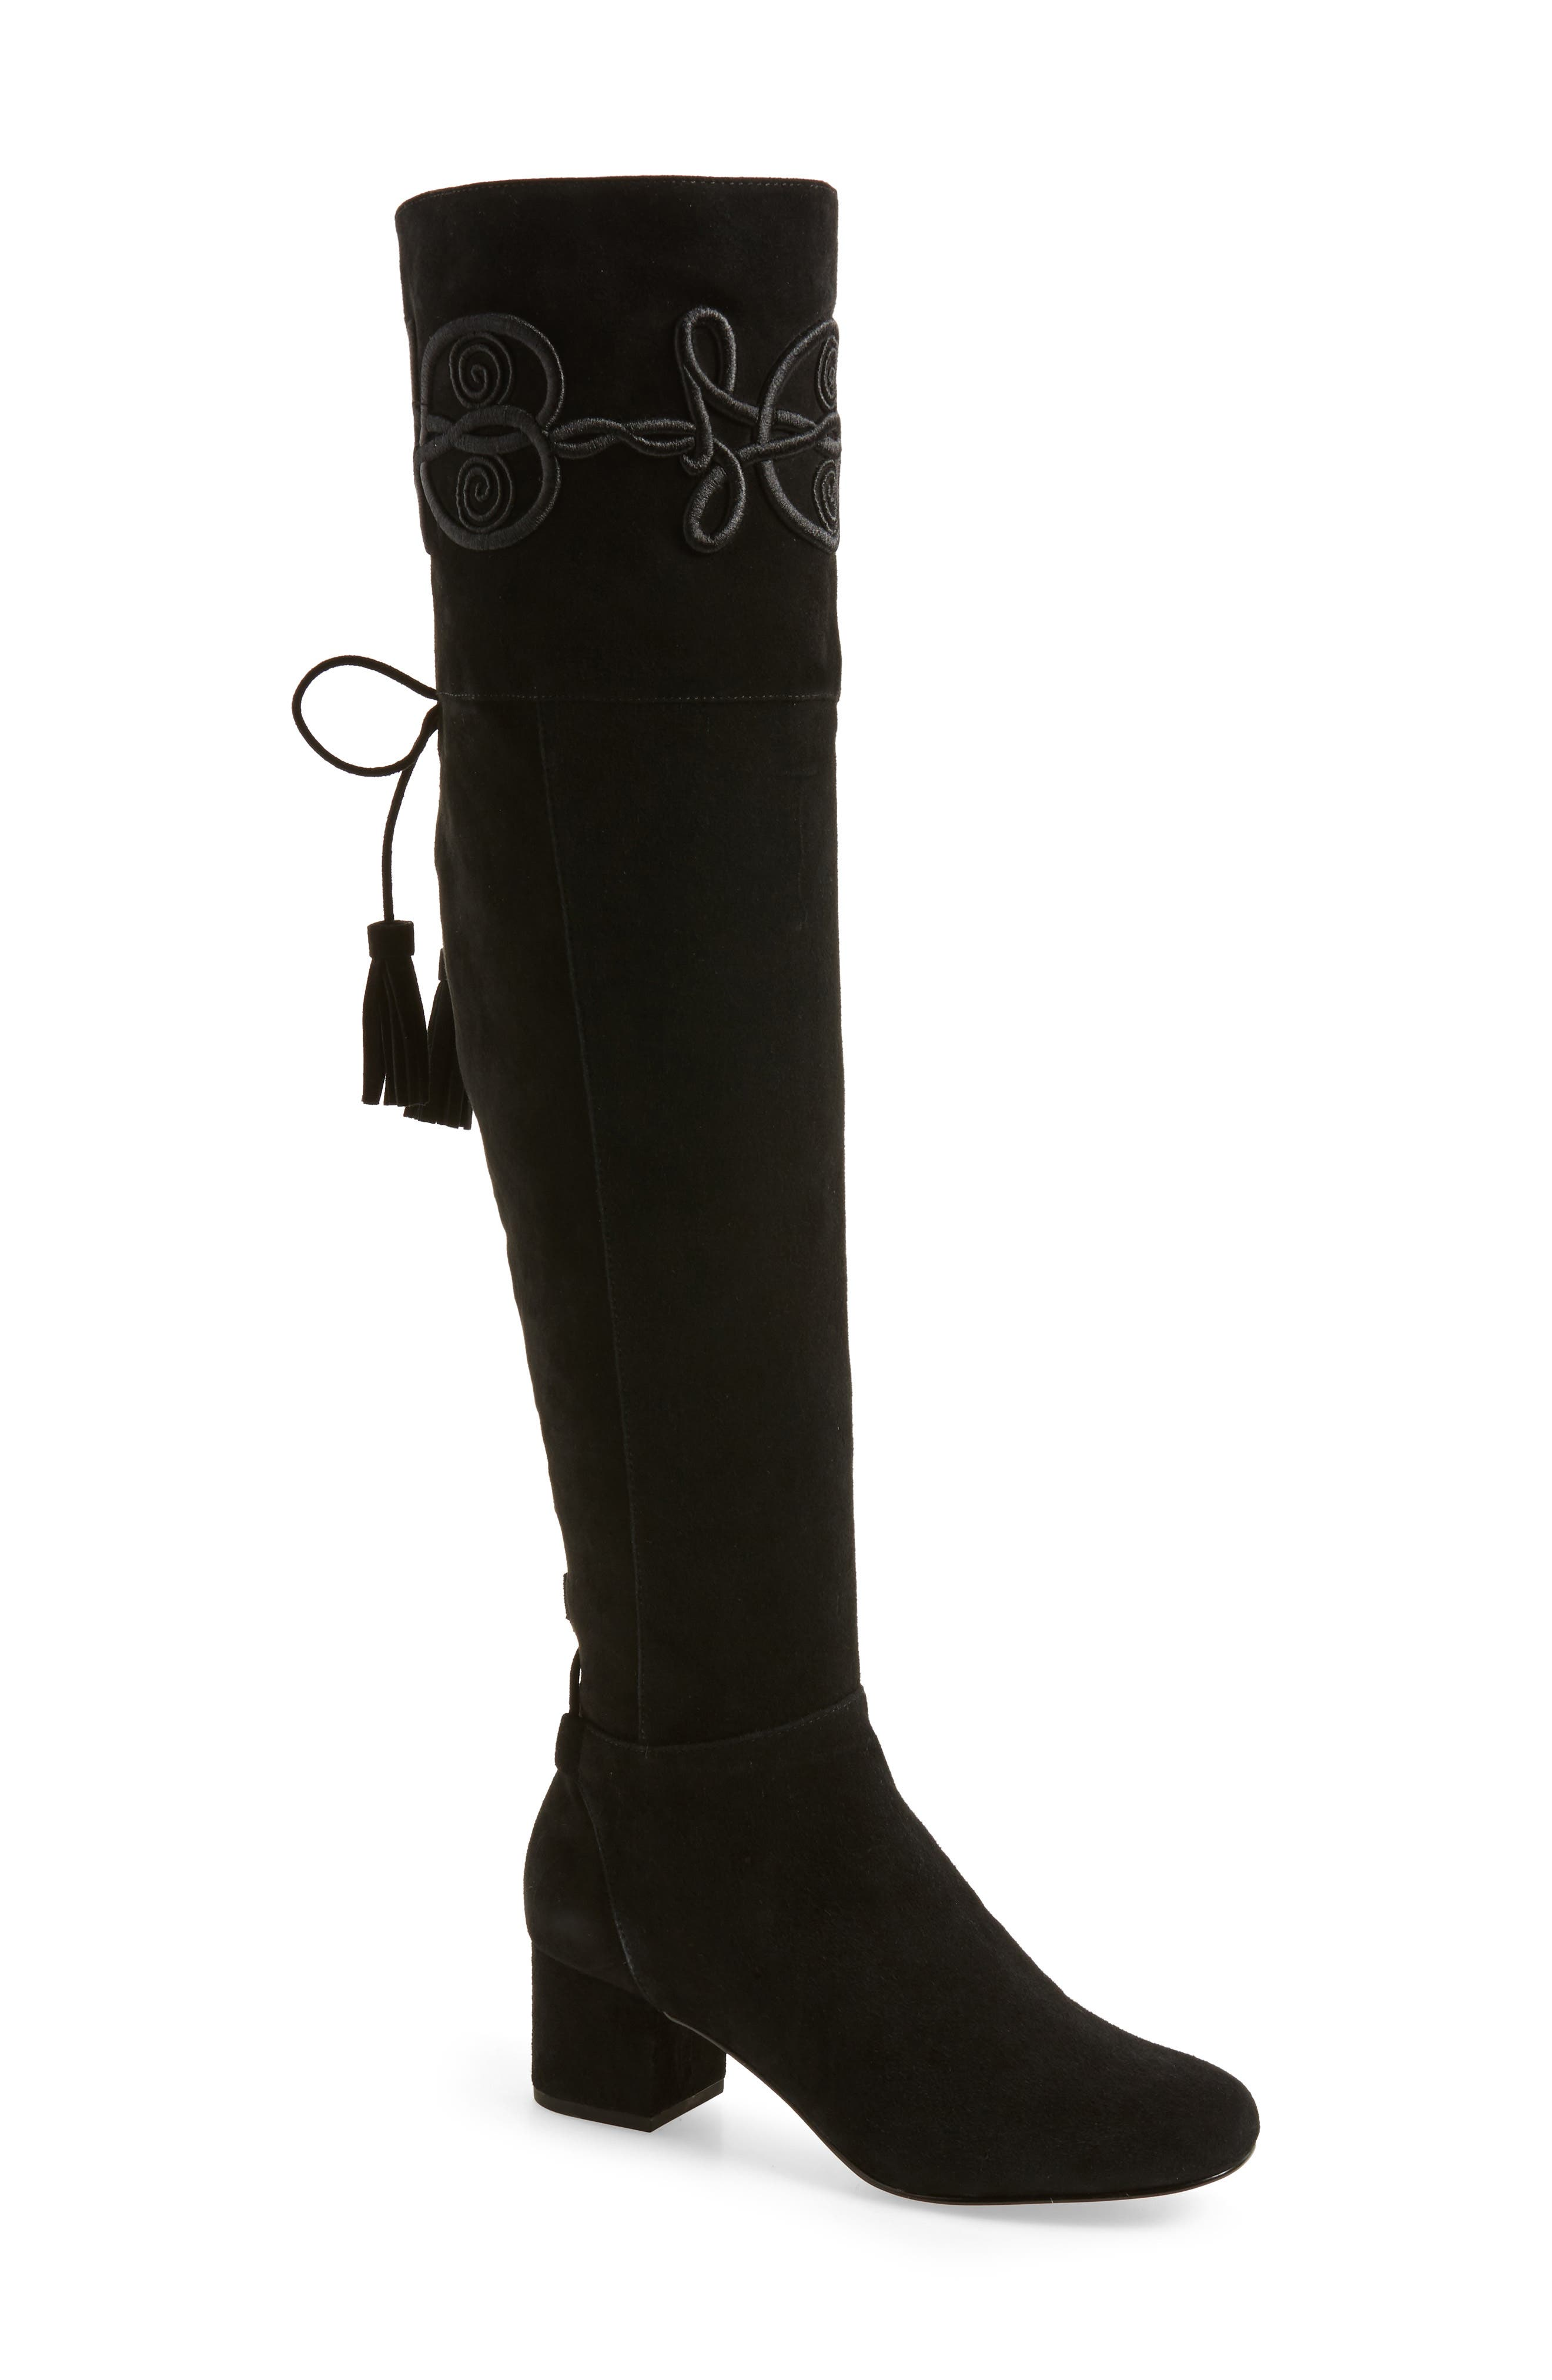 Shiloh Over the Knee Boot,                             Main thumbnail 1, color,                             004